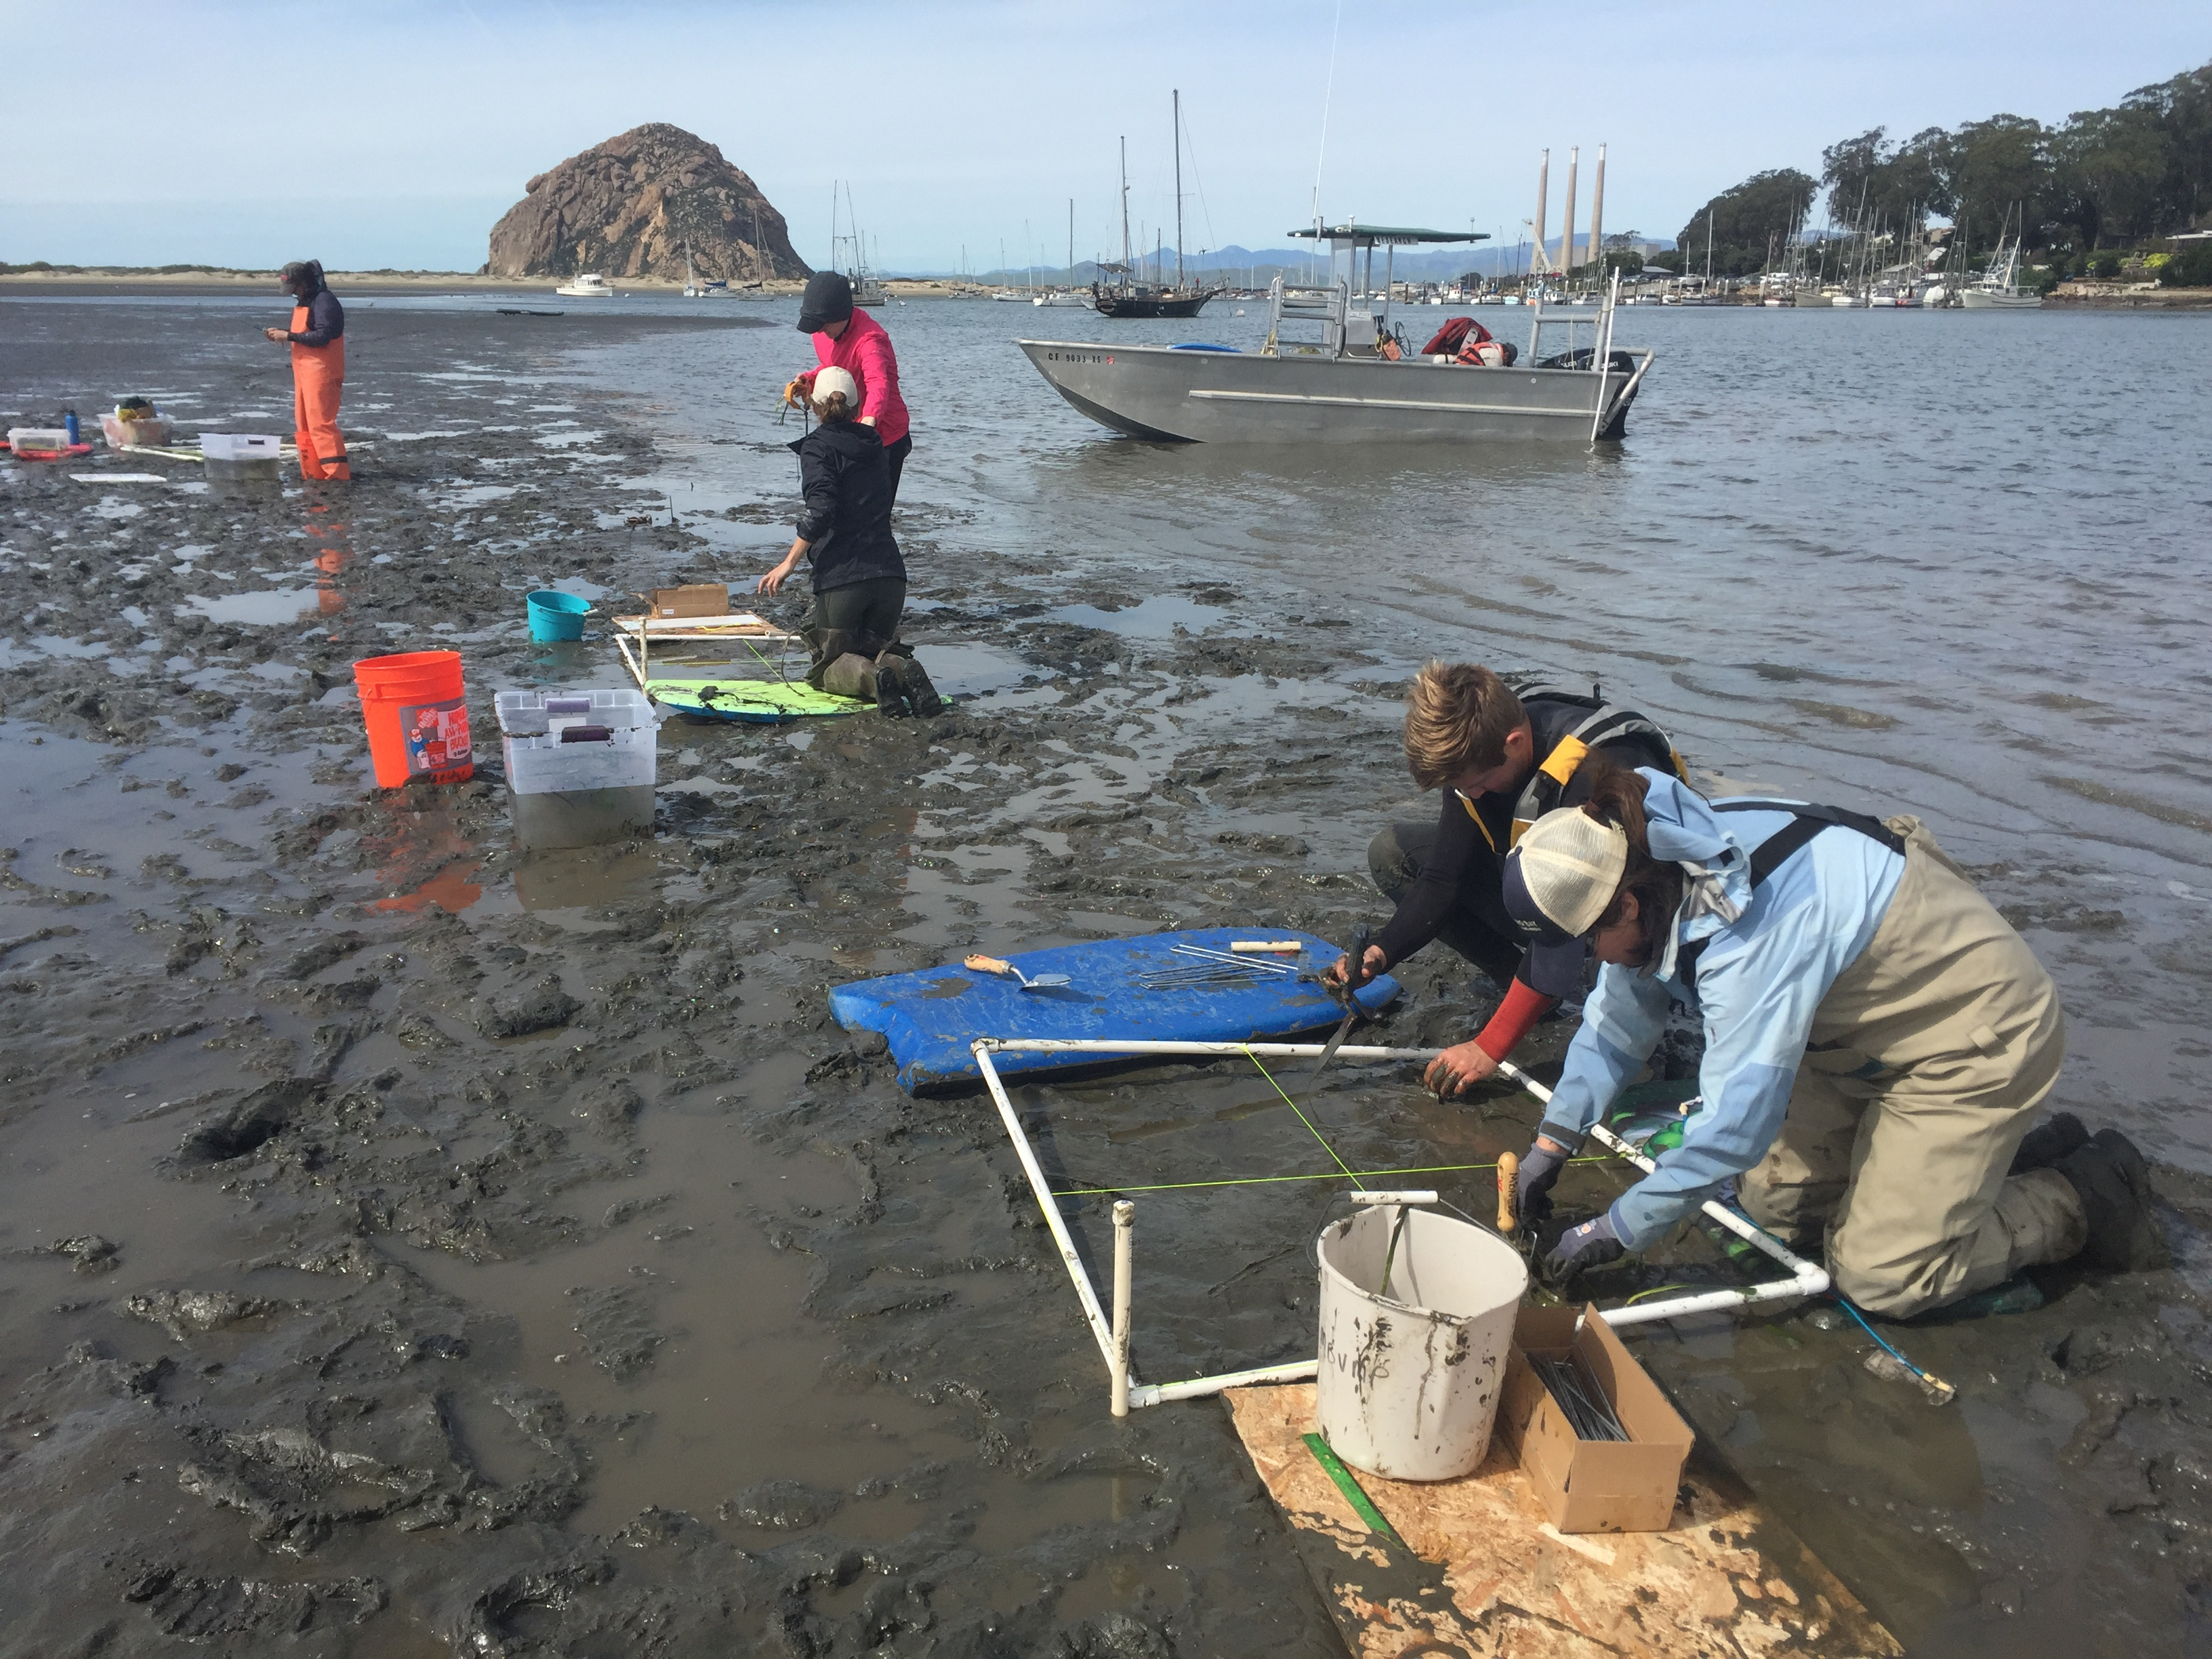 group of people plants eelgrass in mud flat, with water and rock in background